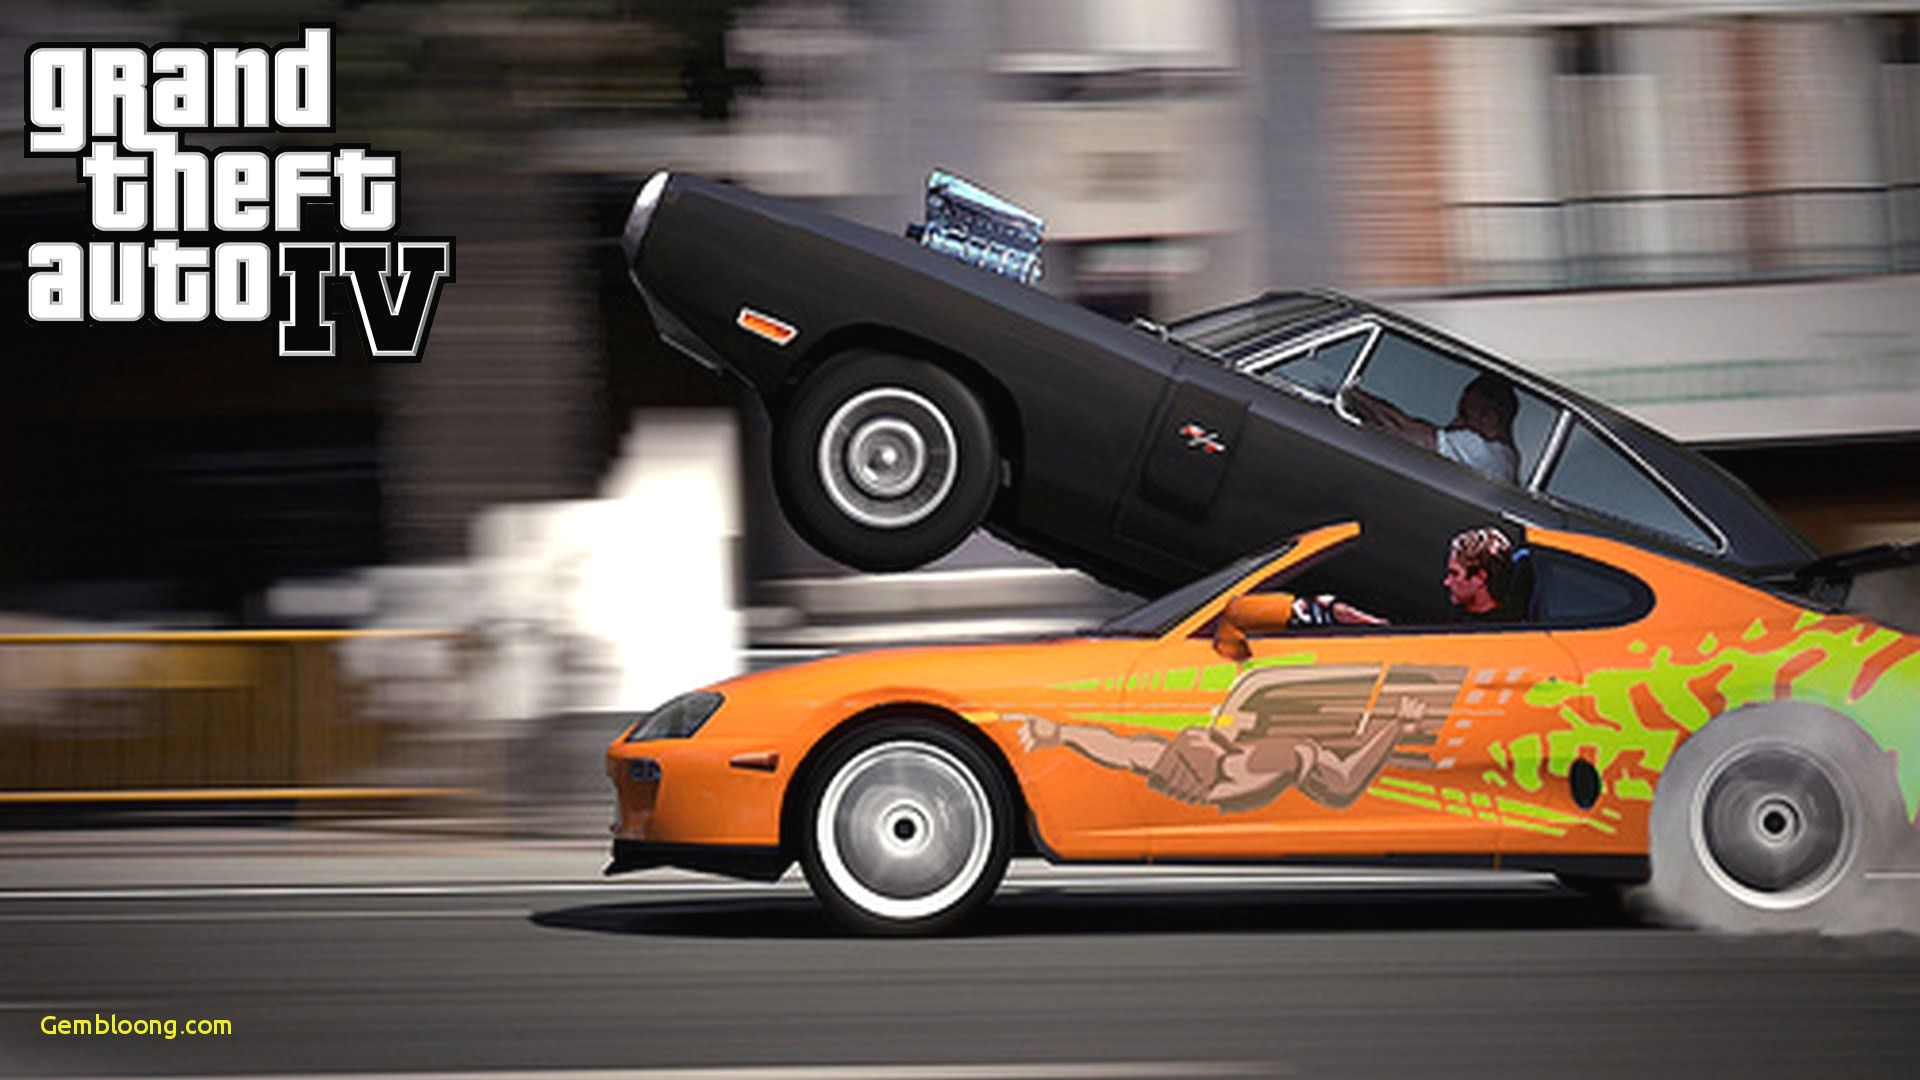 Epic Car Wallpapers: Top Free Epic GTA 5 Backgrounds